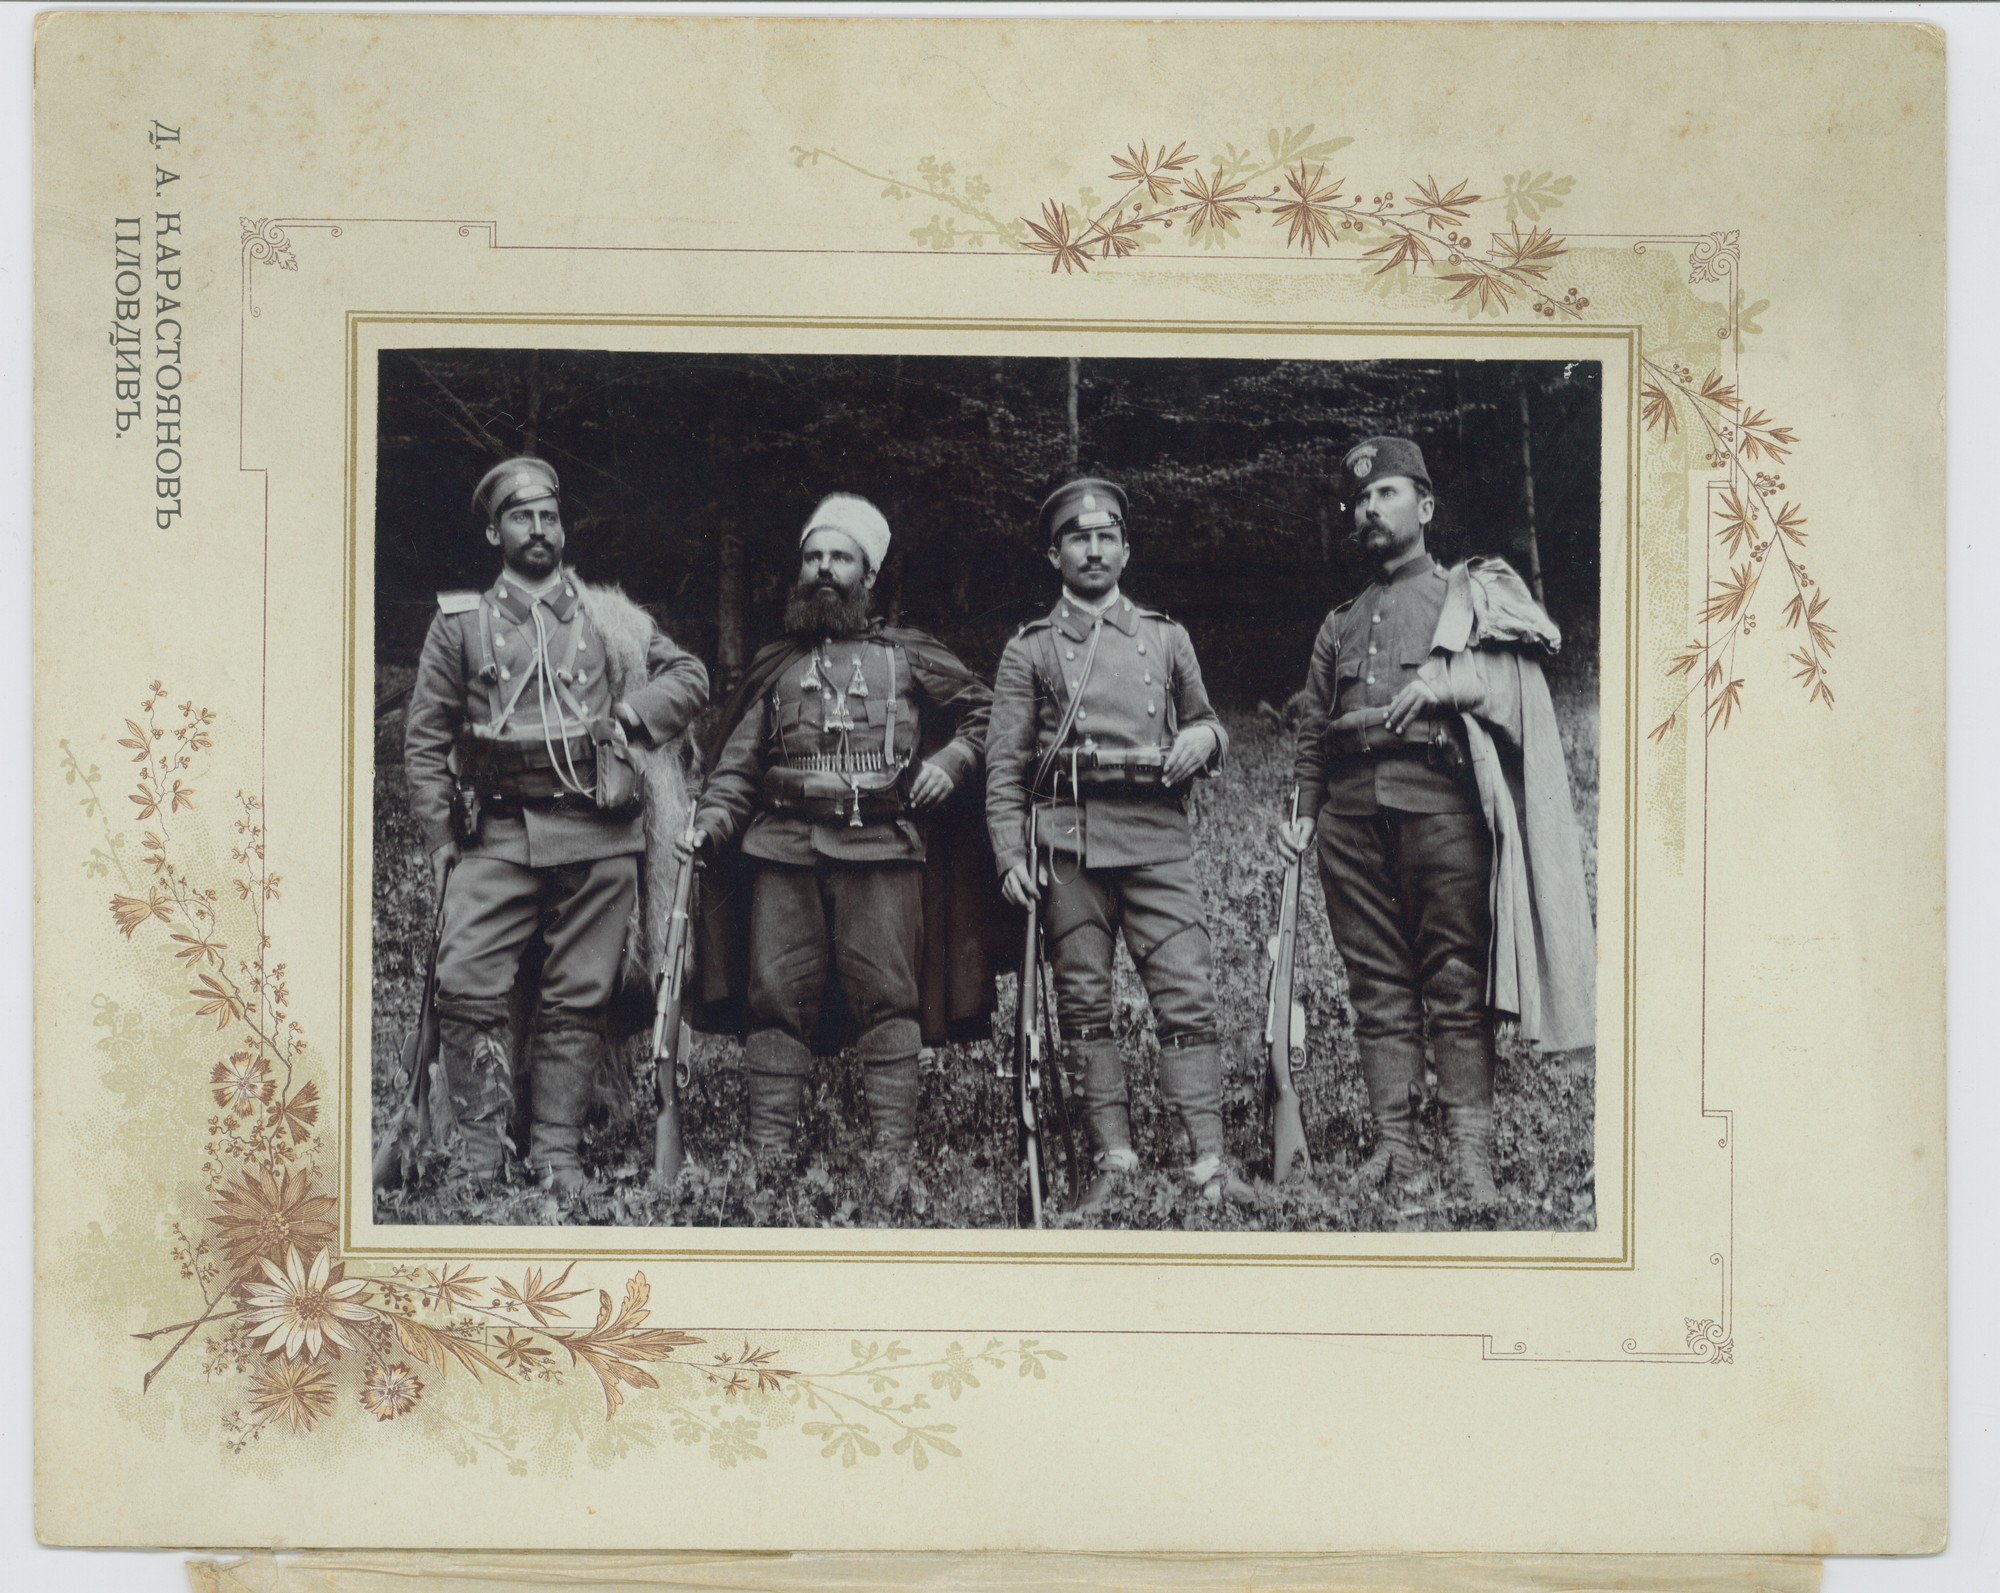 Group portrait of men in military uniforms, © Scientific Archive of the Bulgarian Academy of Sciences